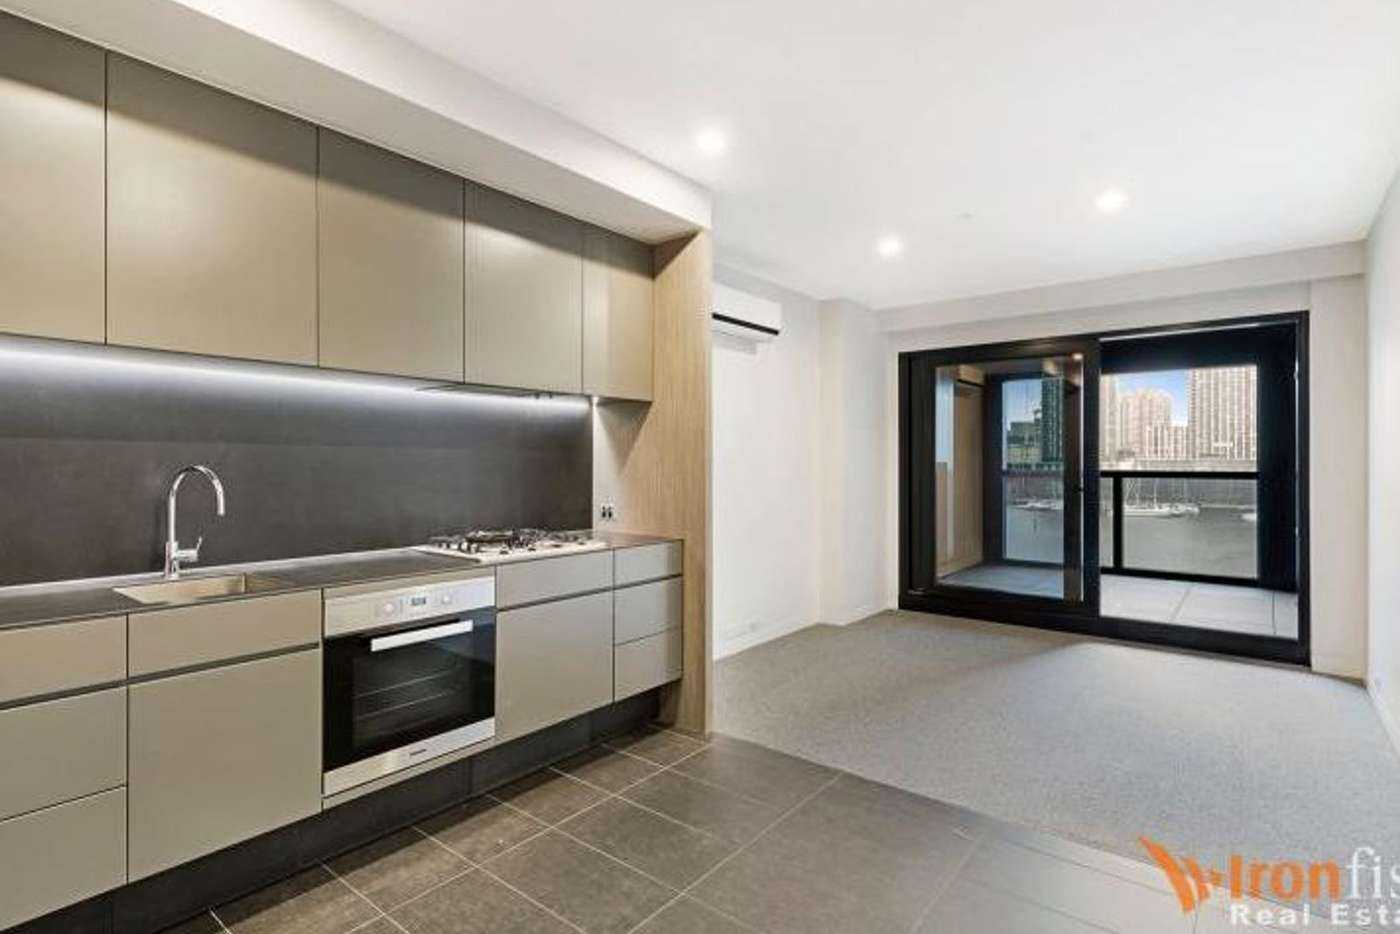 Main view of Homely apartment listing, Level08/8 Pearl River Road, Docklands VIC 3008